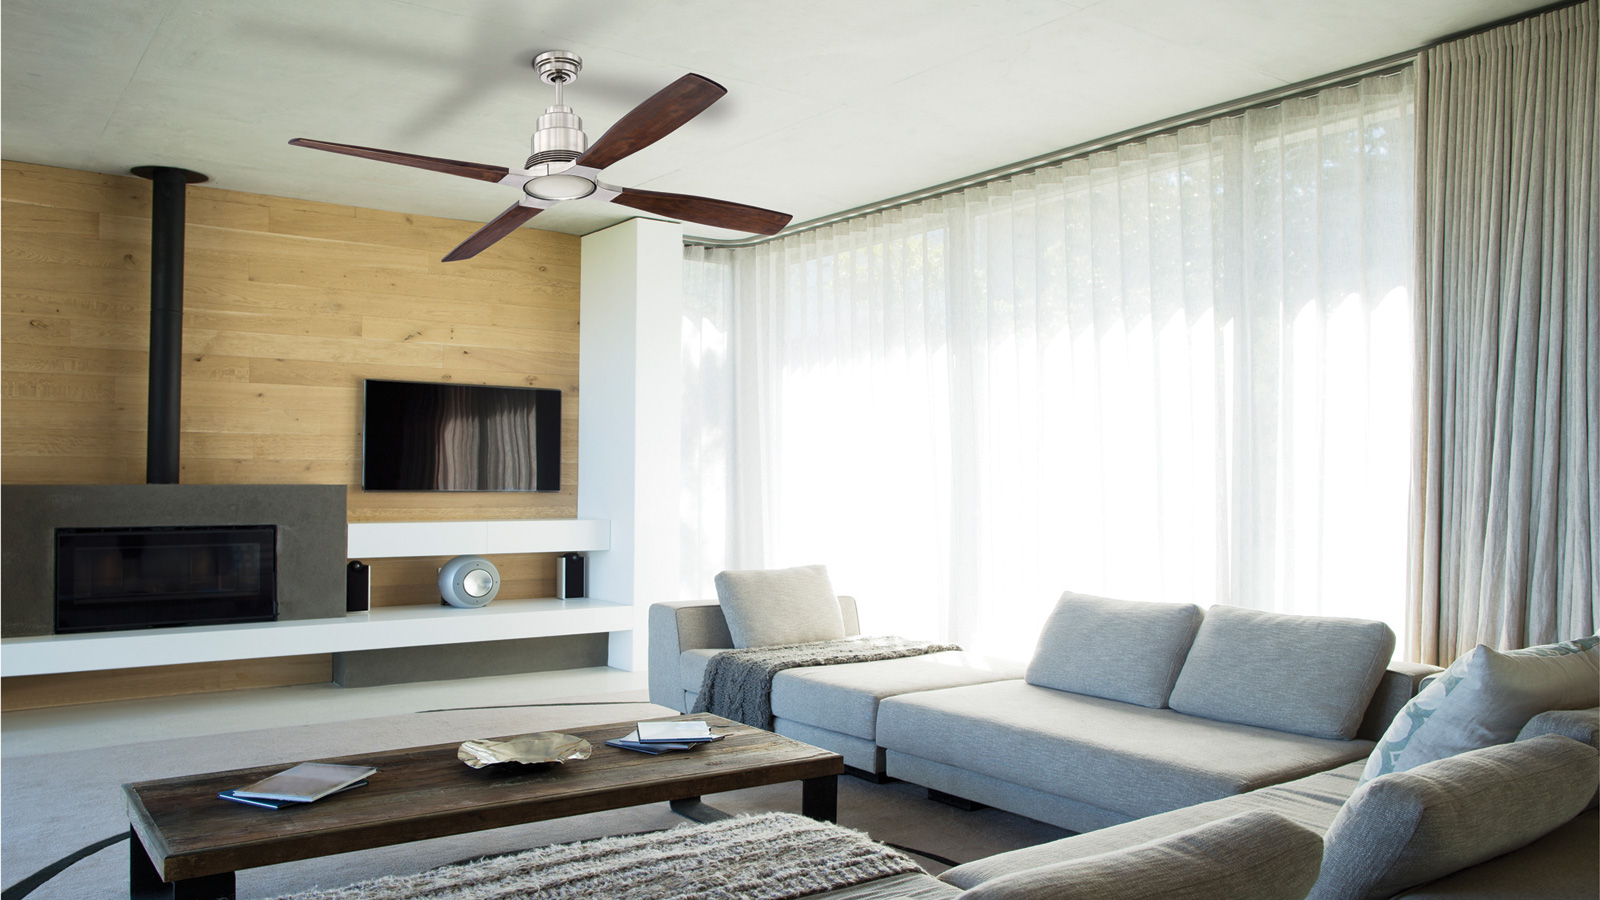 Modern home interior with a contemporary ceiling fan